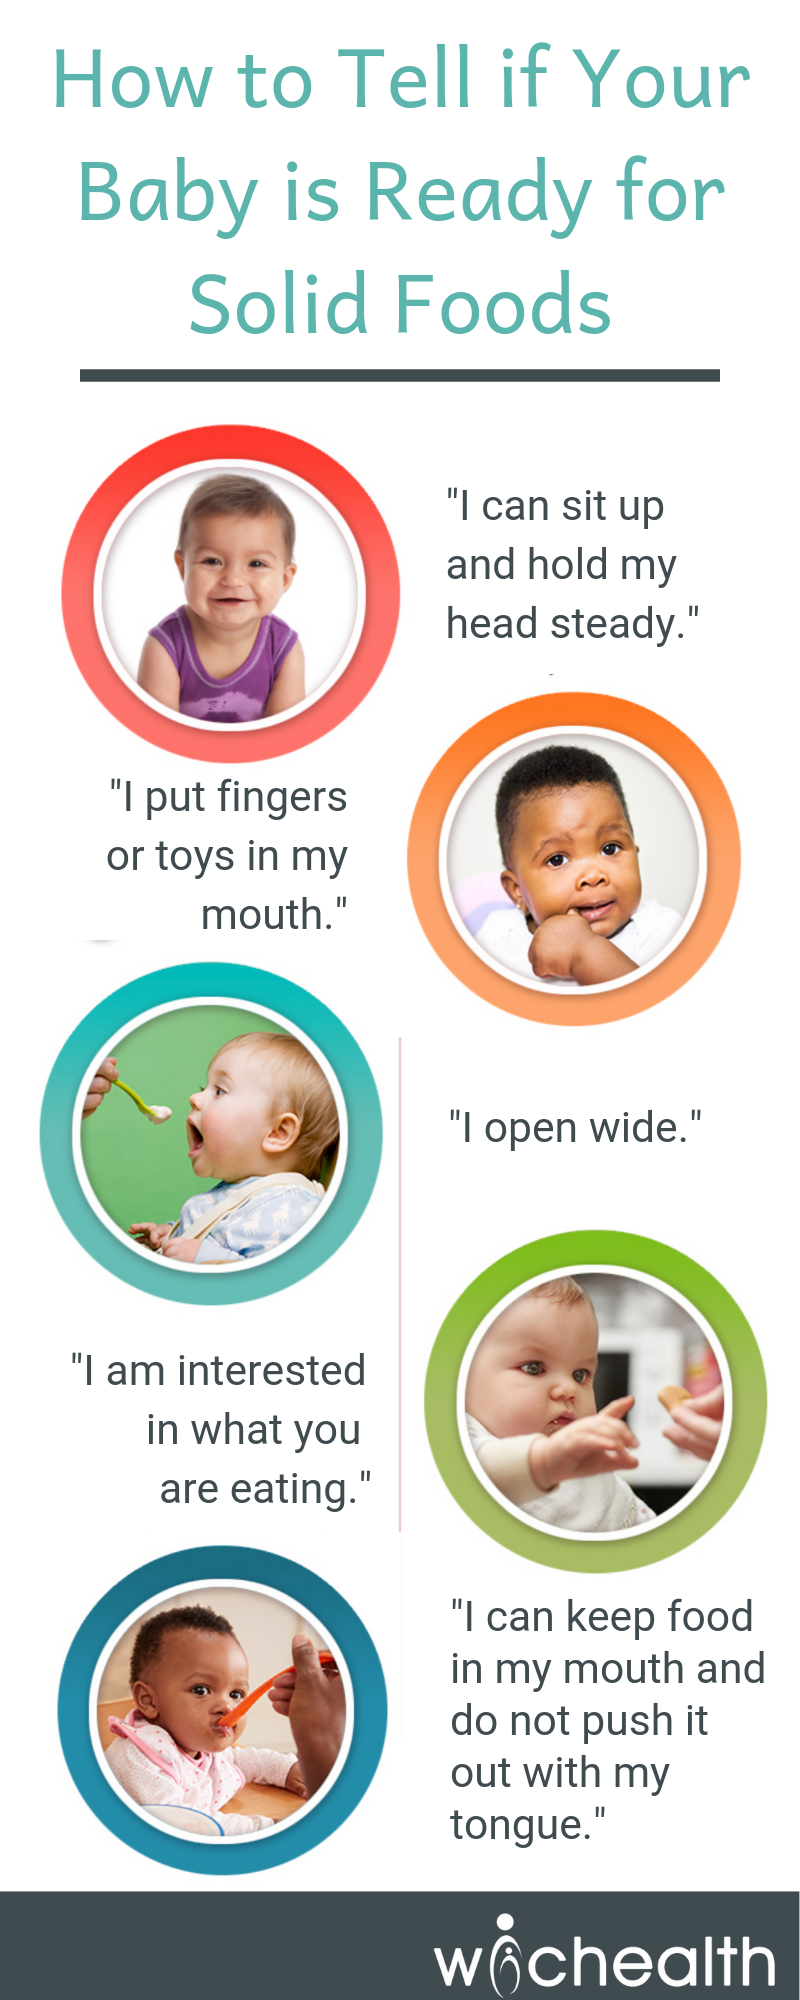 Am I Ready For A Baby : ready, Wondering, Ready, Solid, Foods?, Signs, Readiness, Ready,, Baby,, Health